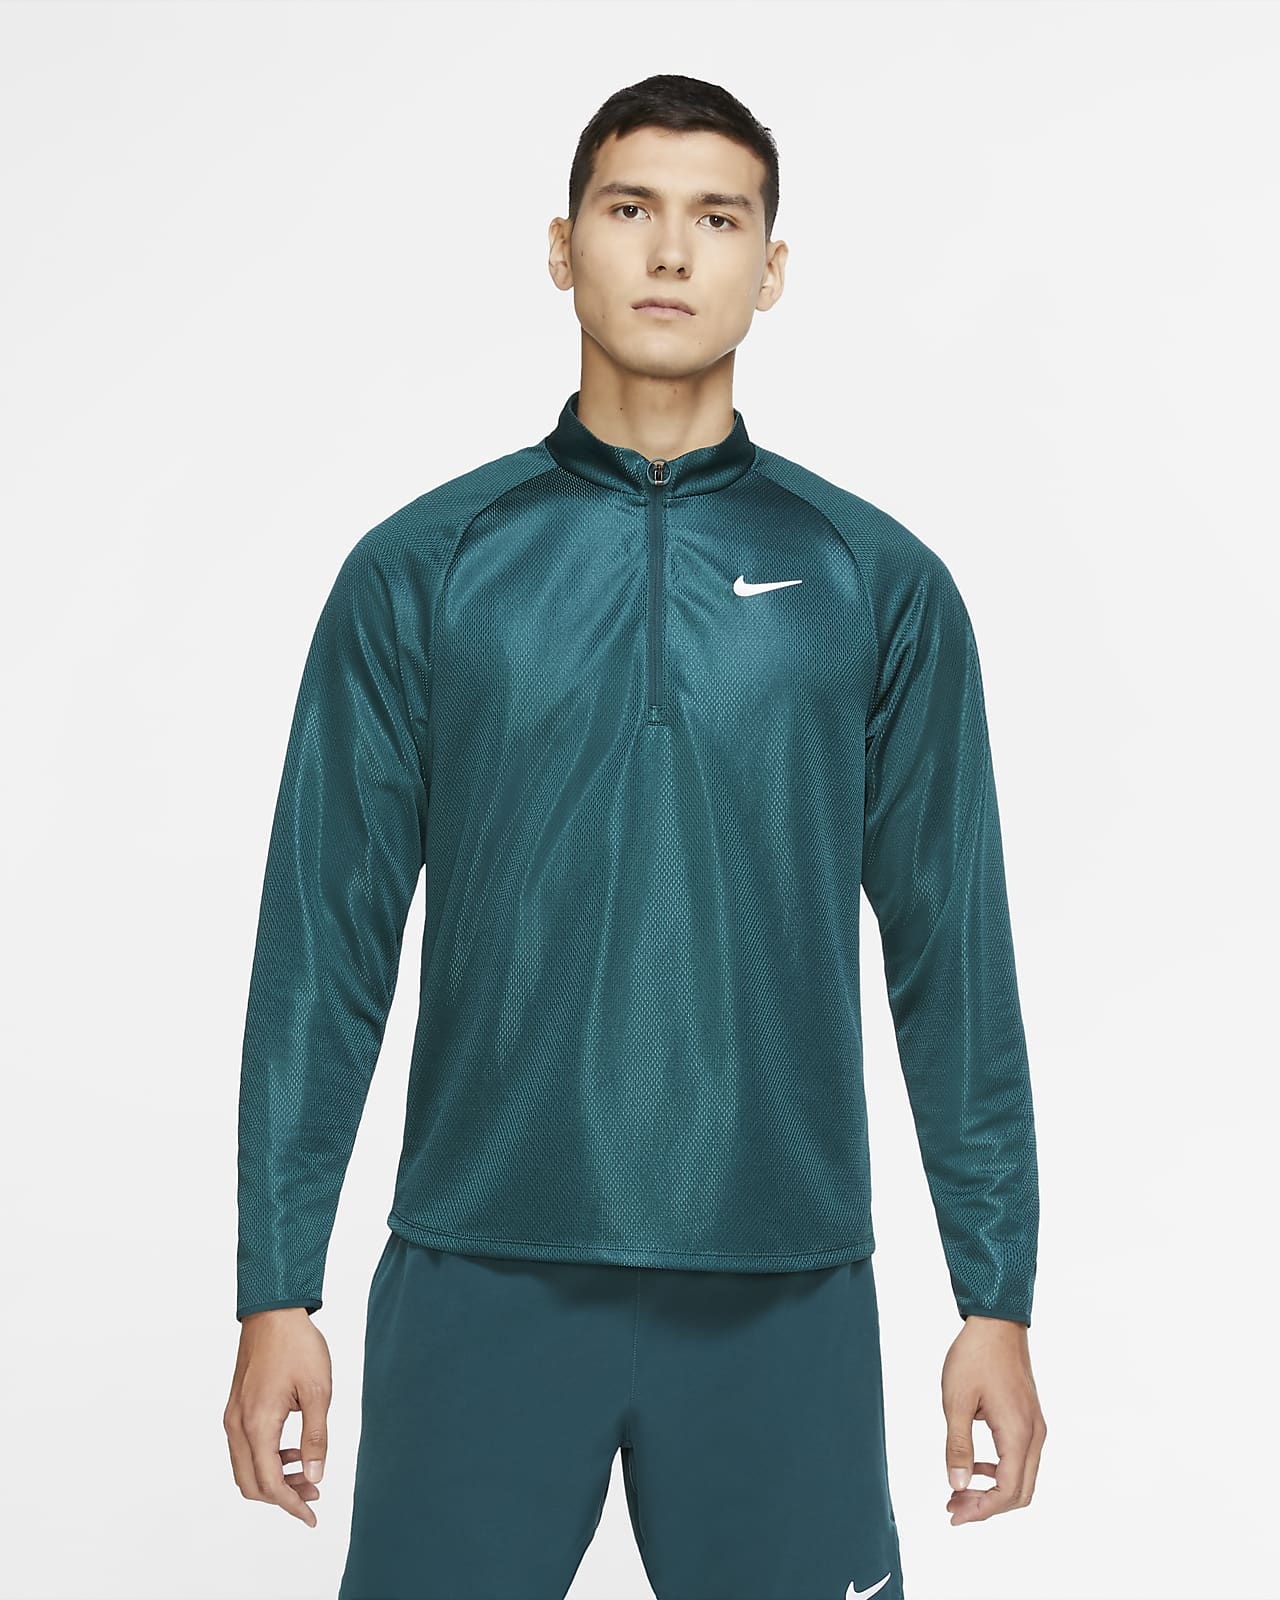 NikeCourt Challenger Men's Long-Sleeve 1/2-Zip Tennis Top